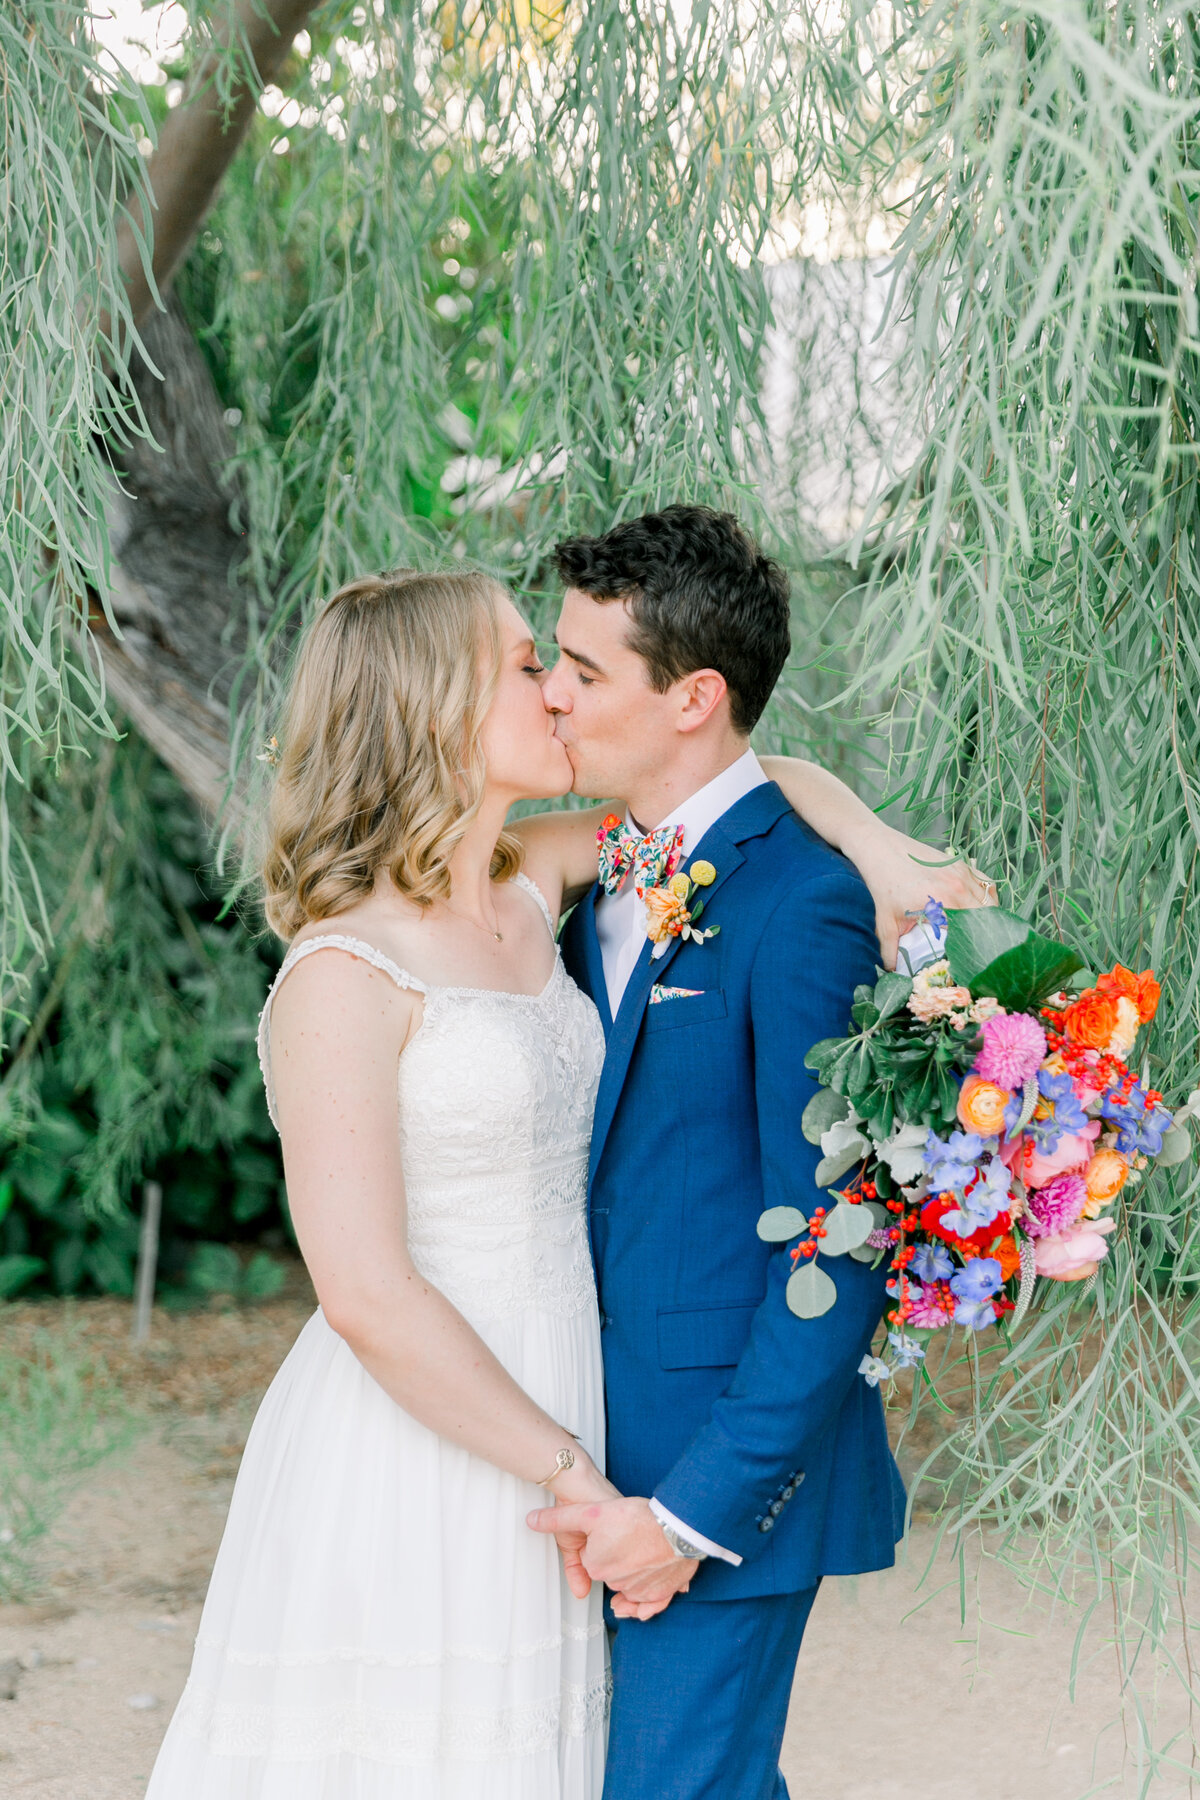 Karlie Colleen Photography - BooJum Venue - Phoenix Arizona - Zack & Chelsea-511